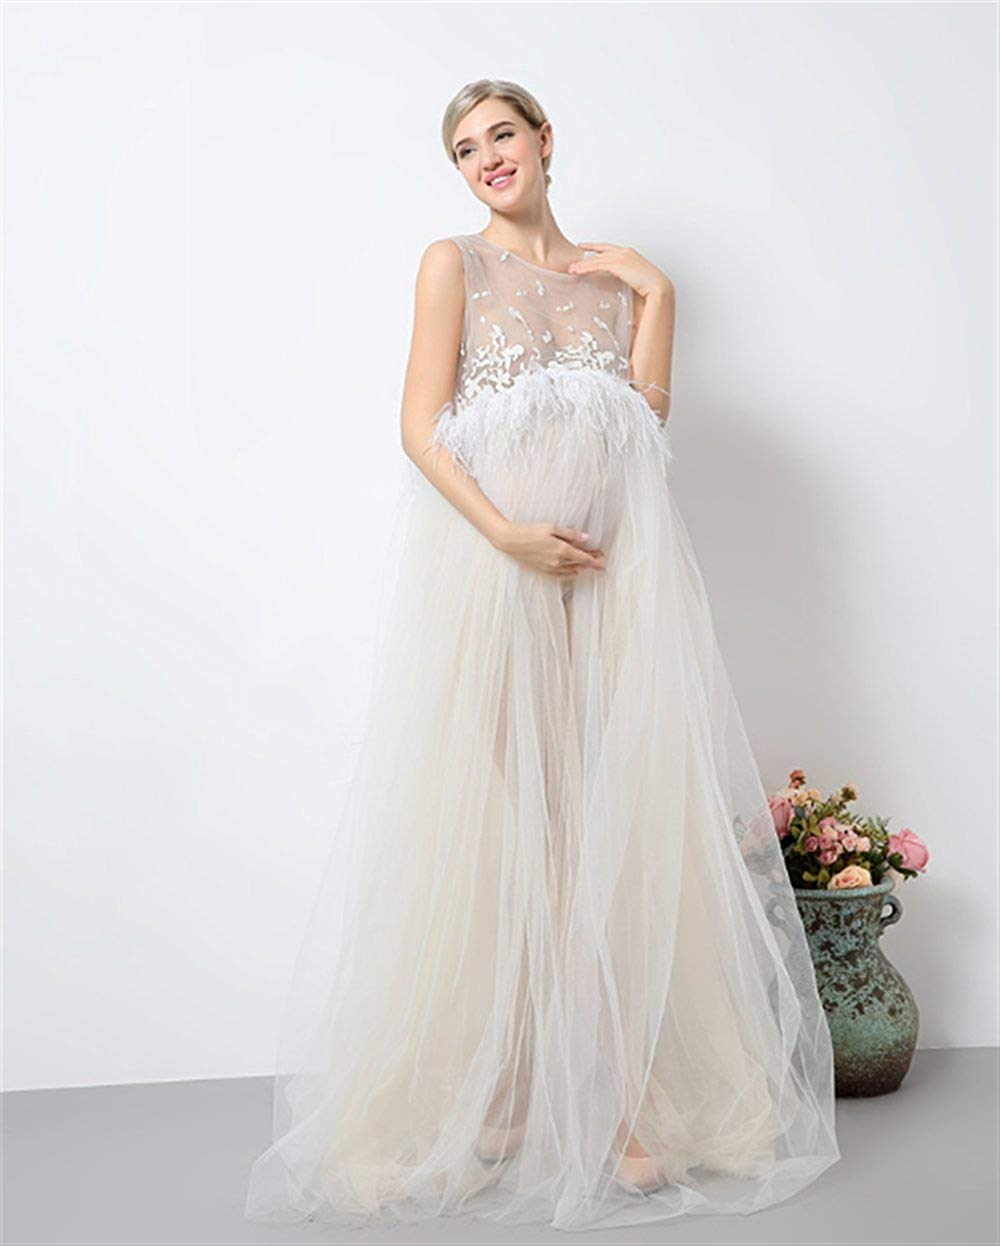 6b45b9aaf3ac1 Get Quotations · DVOTINST Photography Props Maternity Dresses for Photo  Shoot, Elegant and Soft Pregnancy Dress Pregnant White